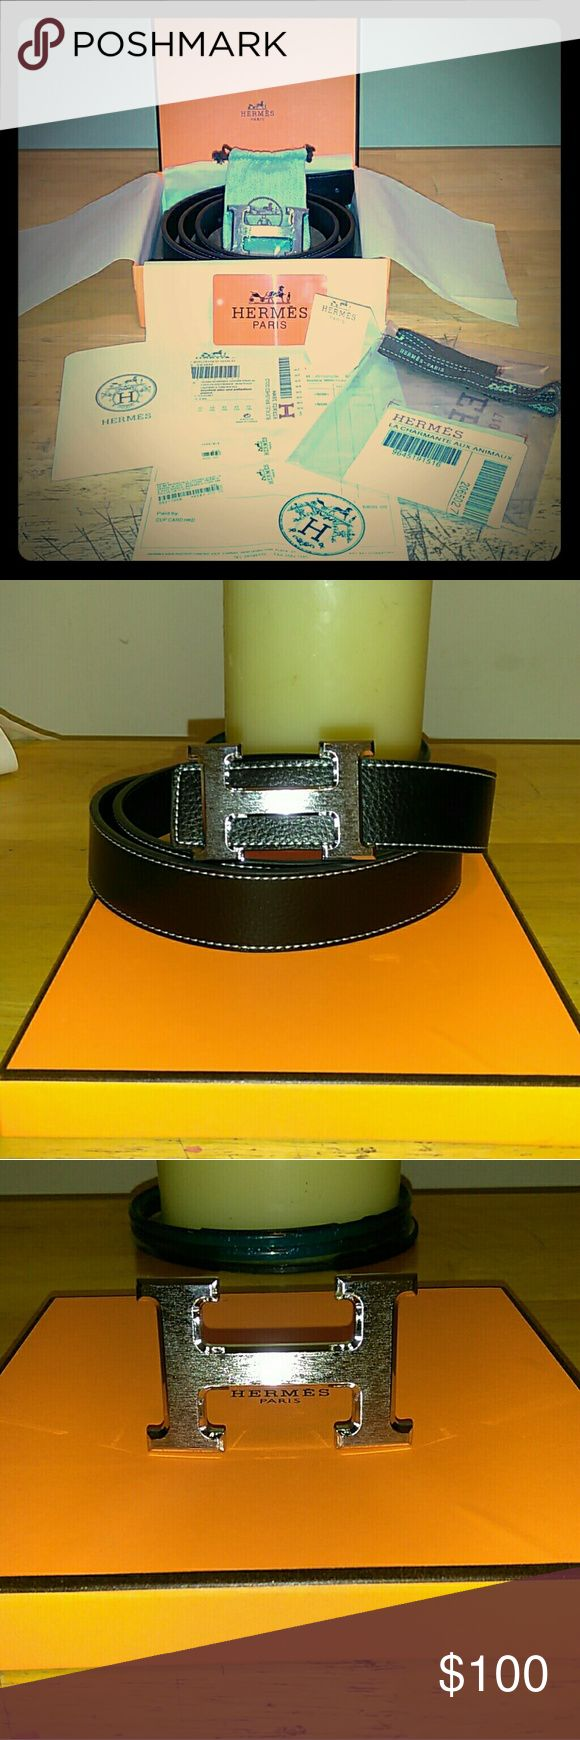 Hermes Belt Brand New Hermes black belt silver buckle Comes with original box and dust bag and paper work!! Price should say it all any other questions please feel free to ask. Order tonight will ship out tomorrow Hermes Accessories Belts